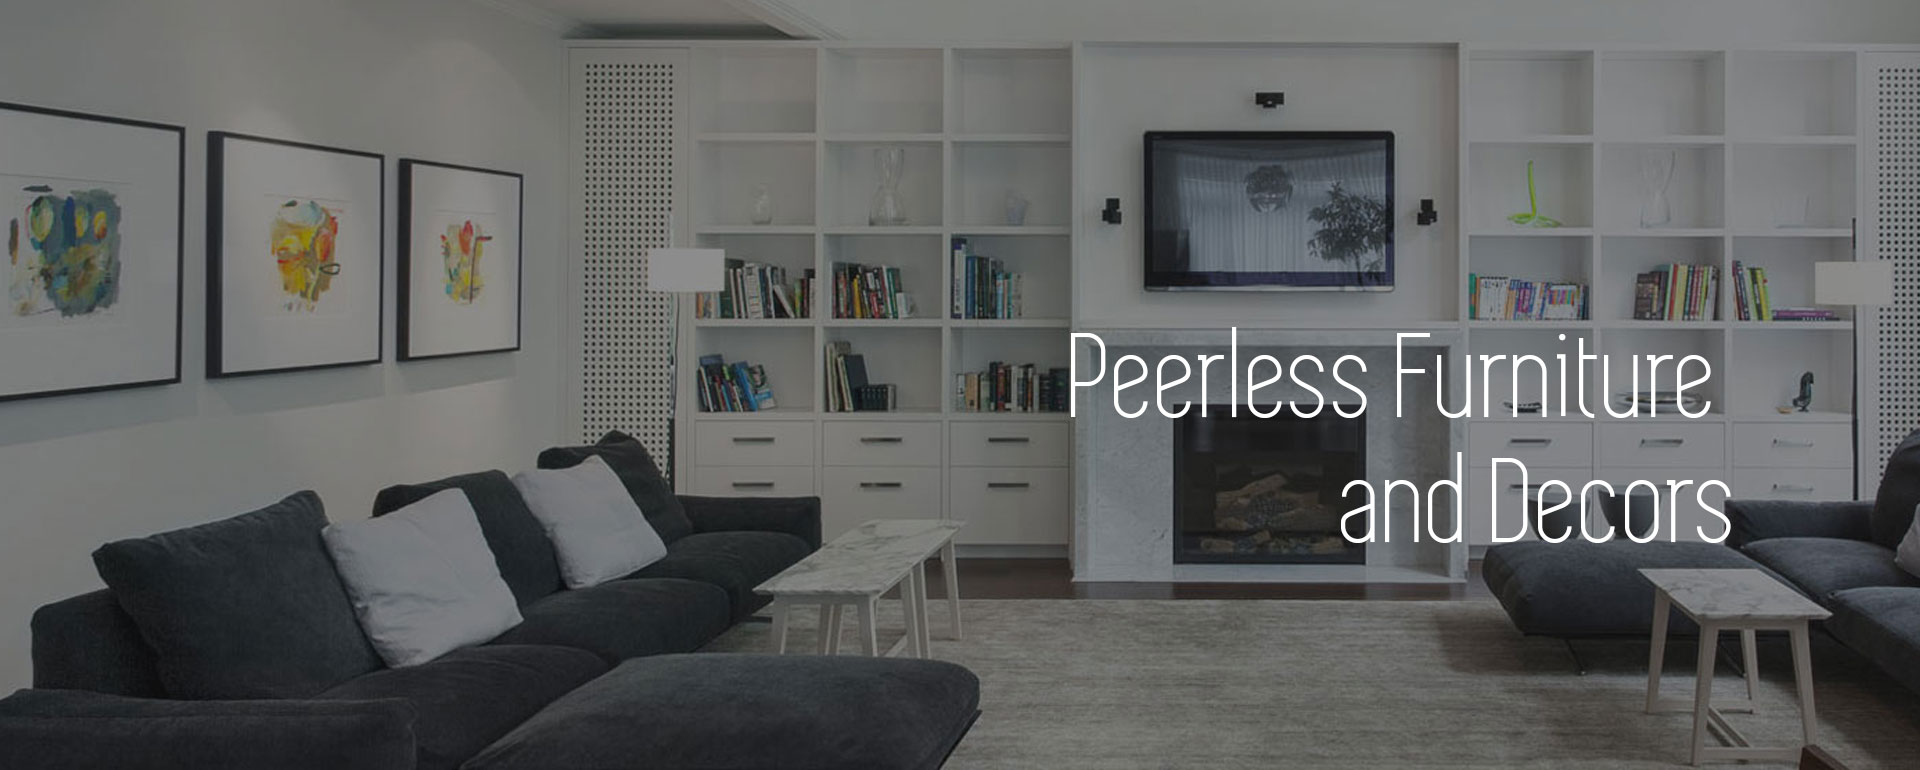 Peerless Furniture and Decors